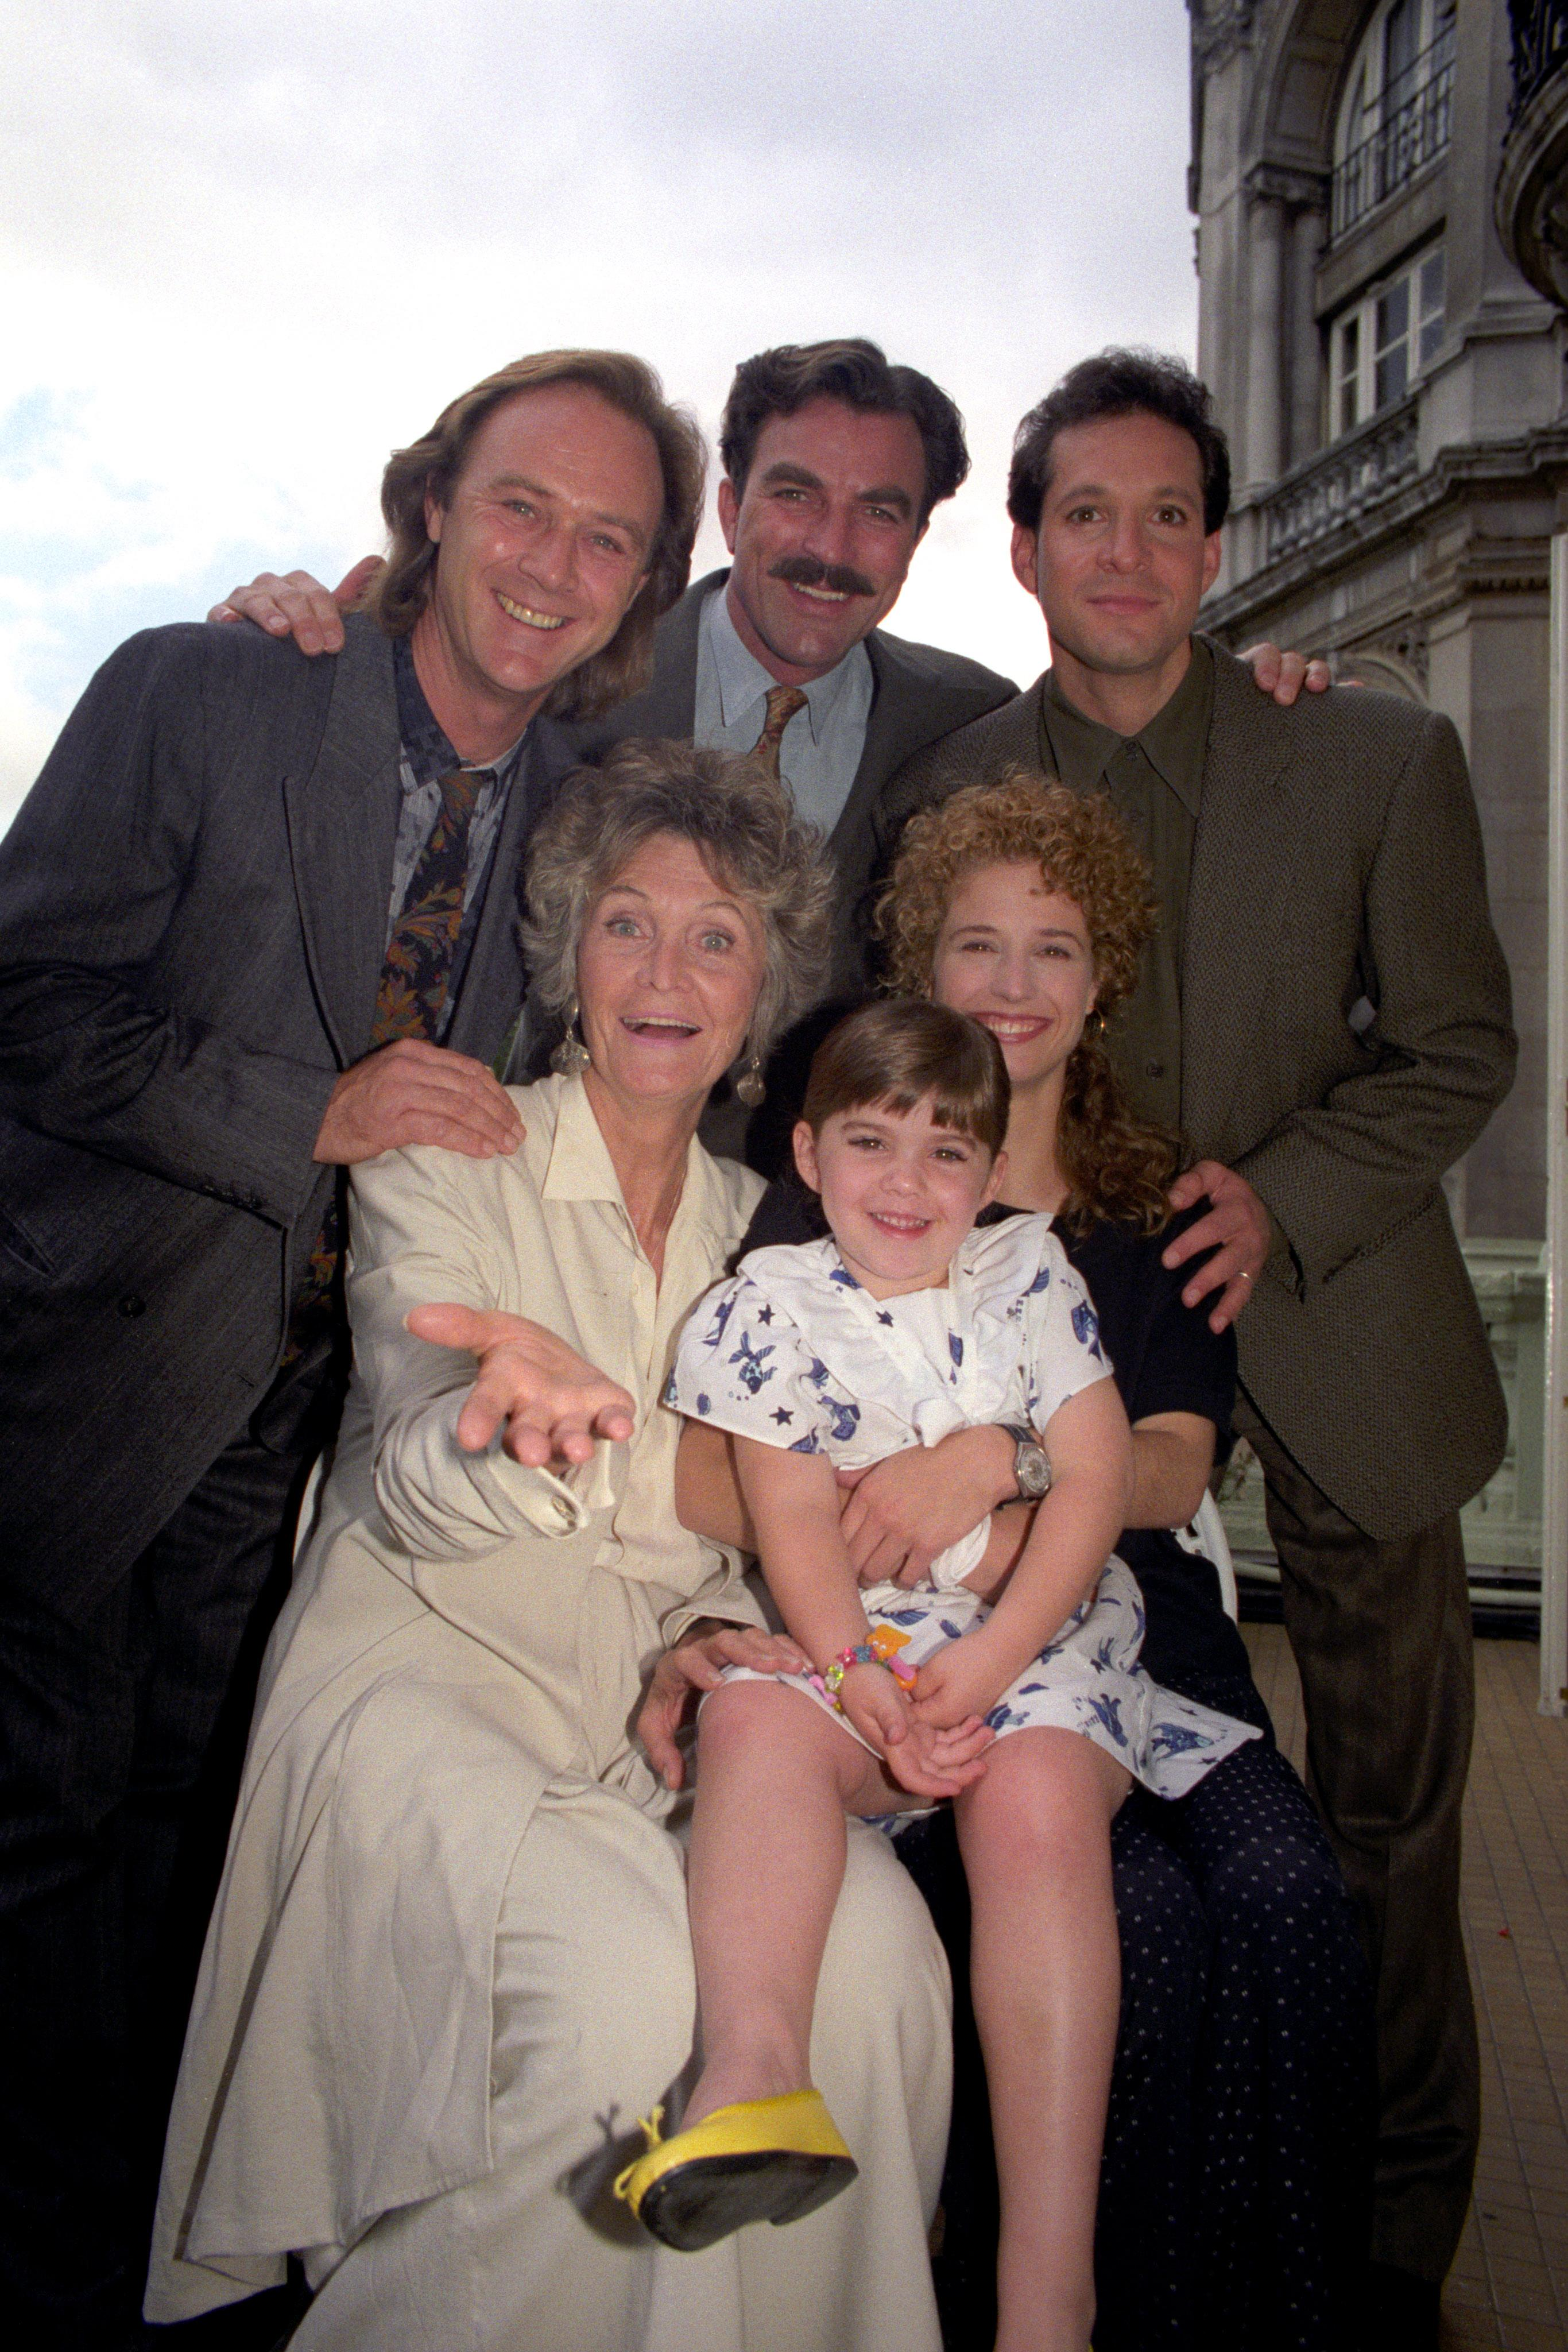 """The cast of the film """"Three Men and a Little Lady"""" in London before shooting for three weeks on location in Stratford-upon-Avon. From left (back row) Christopher Cazenove, Tom Selleck and Steve Guttenberg. Front Row: Sheila Hancock, Robin Wiseman (child) and Nancy Travis (right). (Photo by Sean Dempsey/PA Images via Getty Images)"""